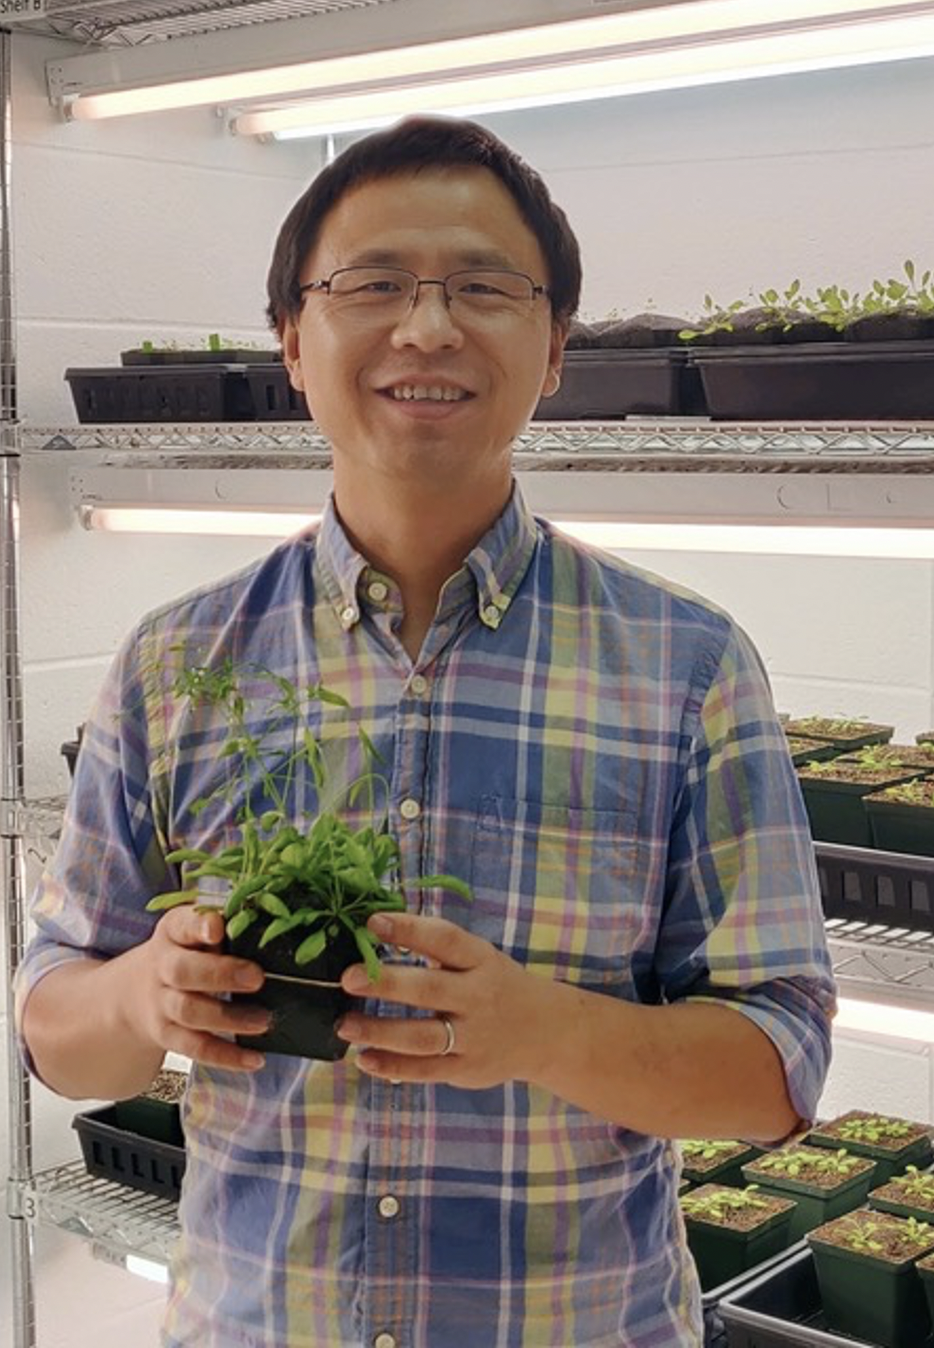 Li Yang smiles in a controlled-environment growth room with shelves of plants behind him.